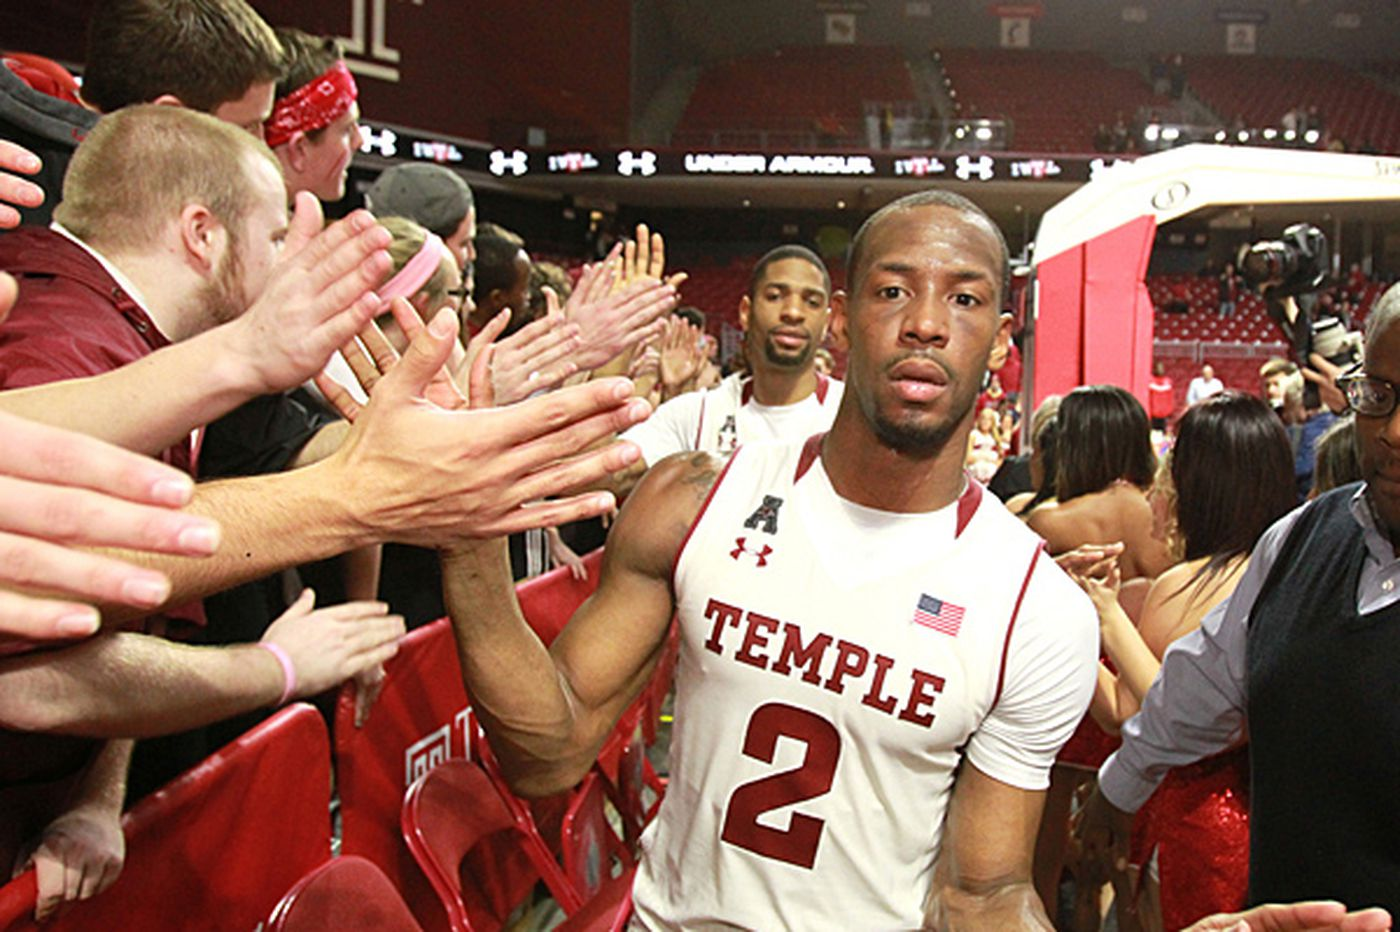 Temple's Cummings invited to basketball showcase